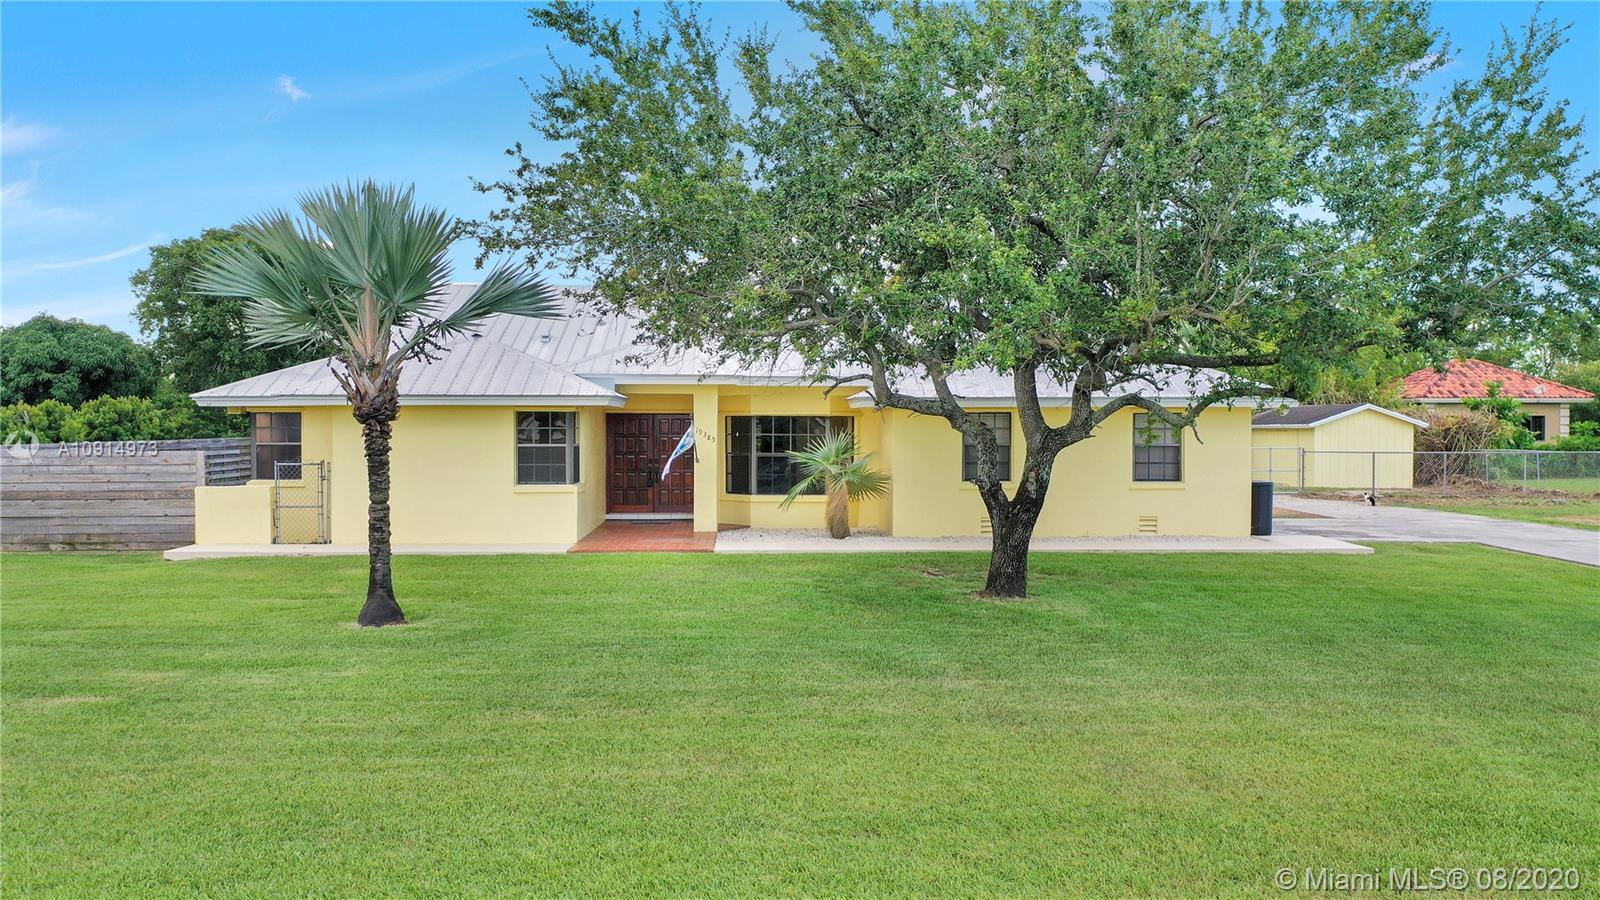 19385 SW 289th St Property Photo - Homestead, FL real estate listing